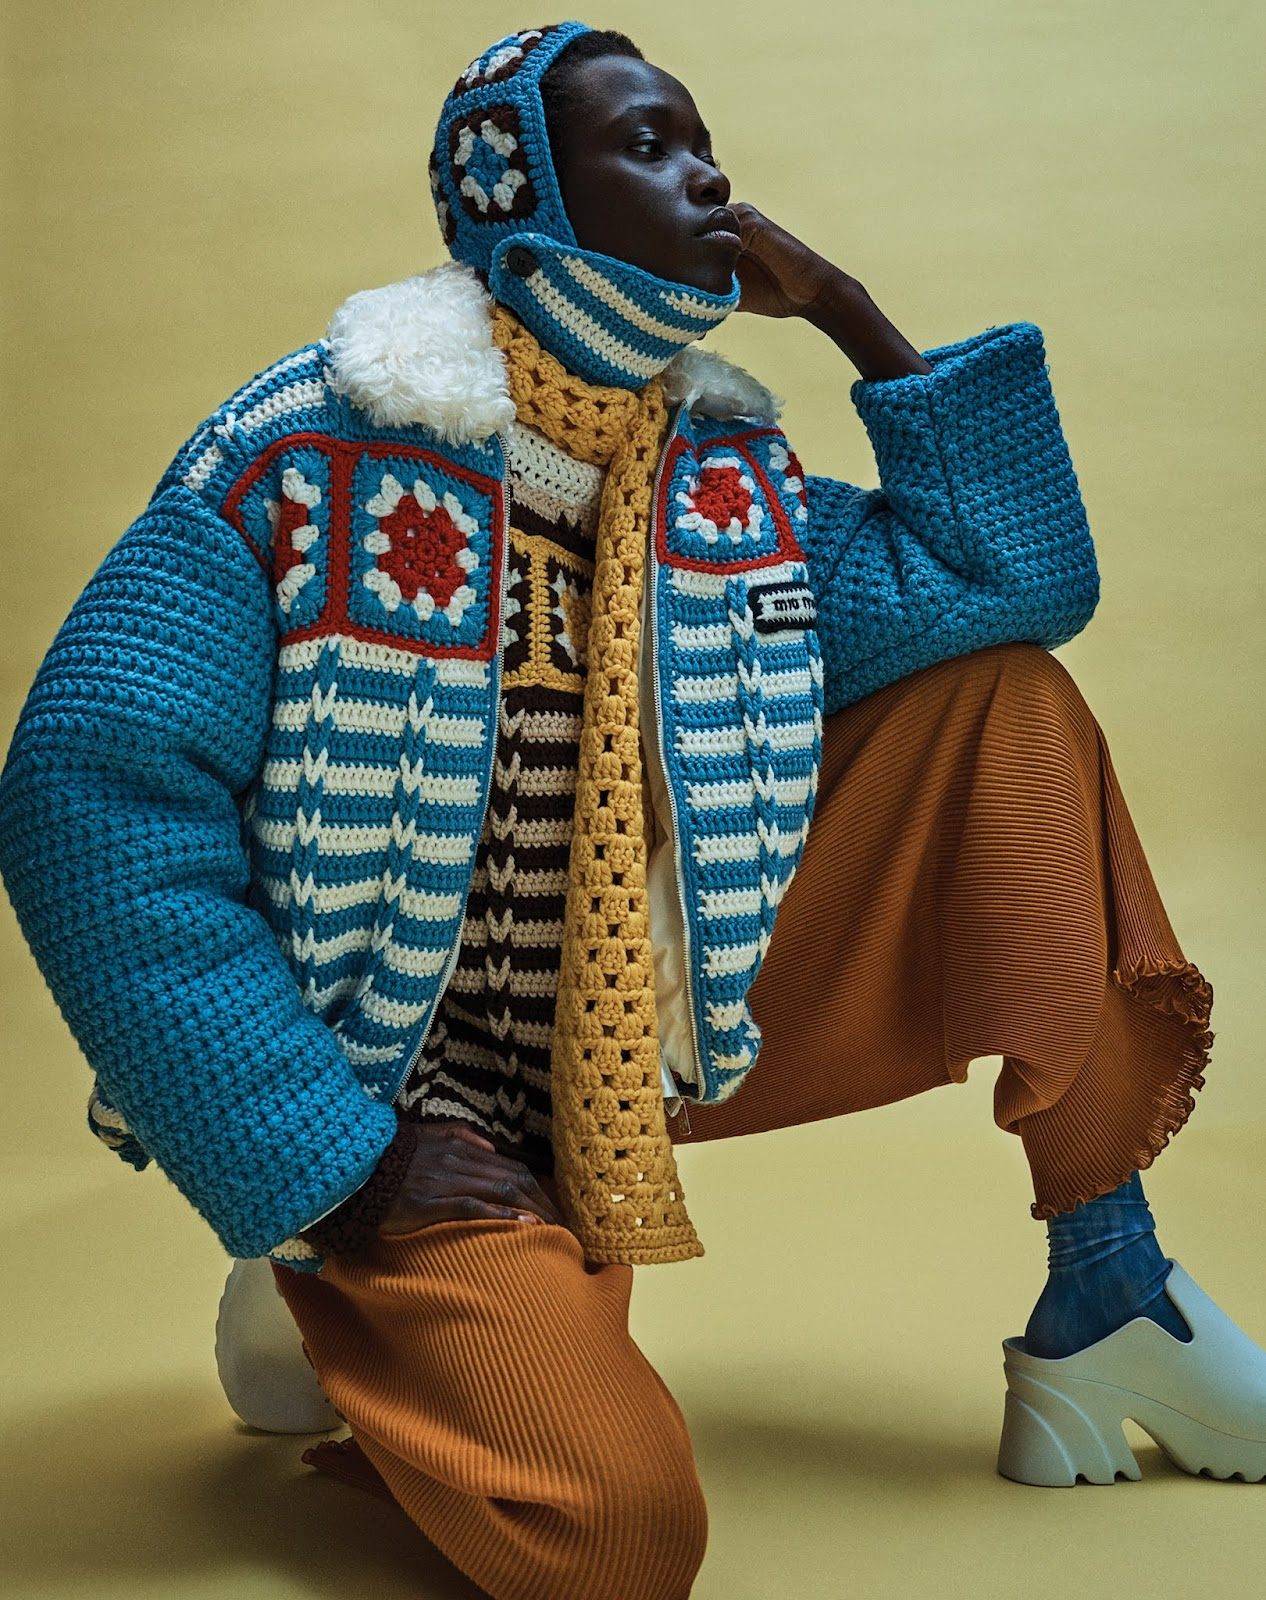 SMILE: 'Knits & Pieces' in WSJ. Magazine Fall 2021 by Josh Olins, Models: Miriam Sanchez, Awar Odhiang, Louise Robert, Laura Hagested